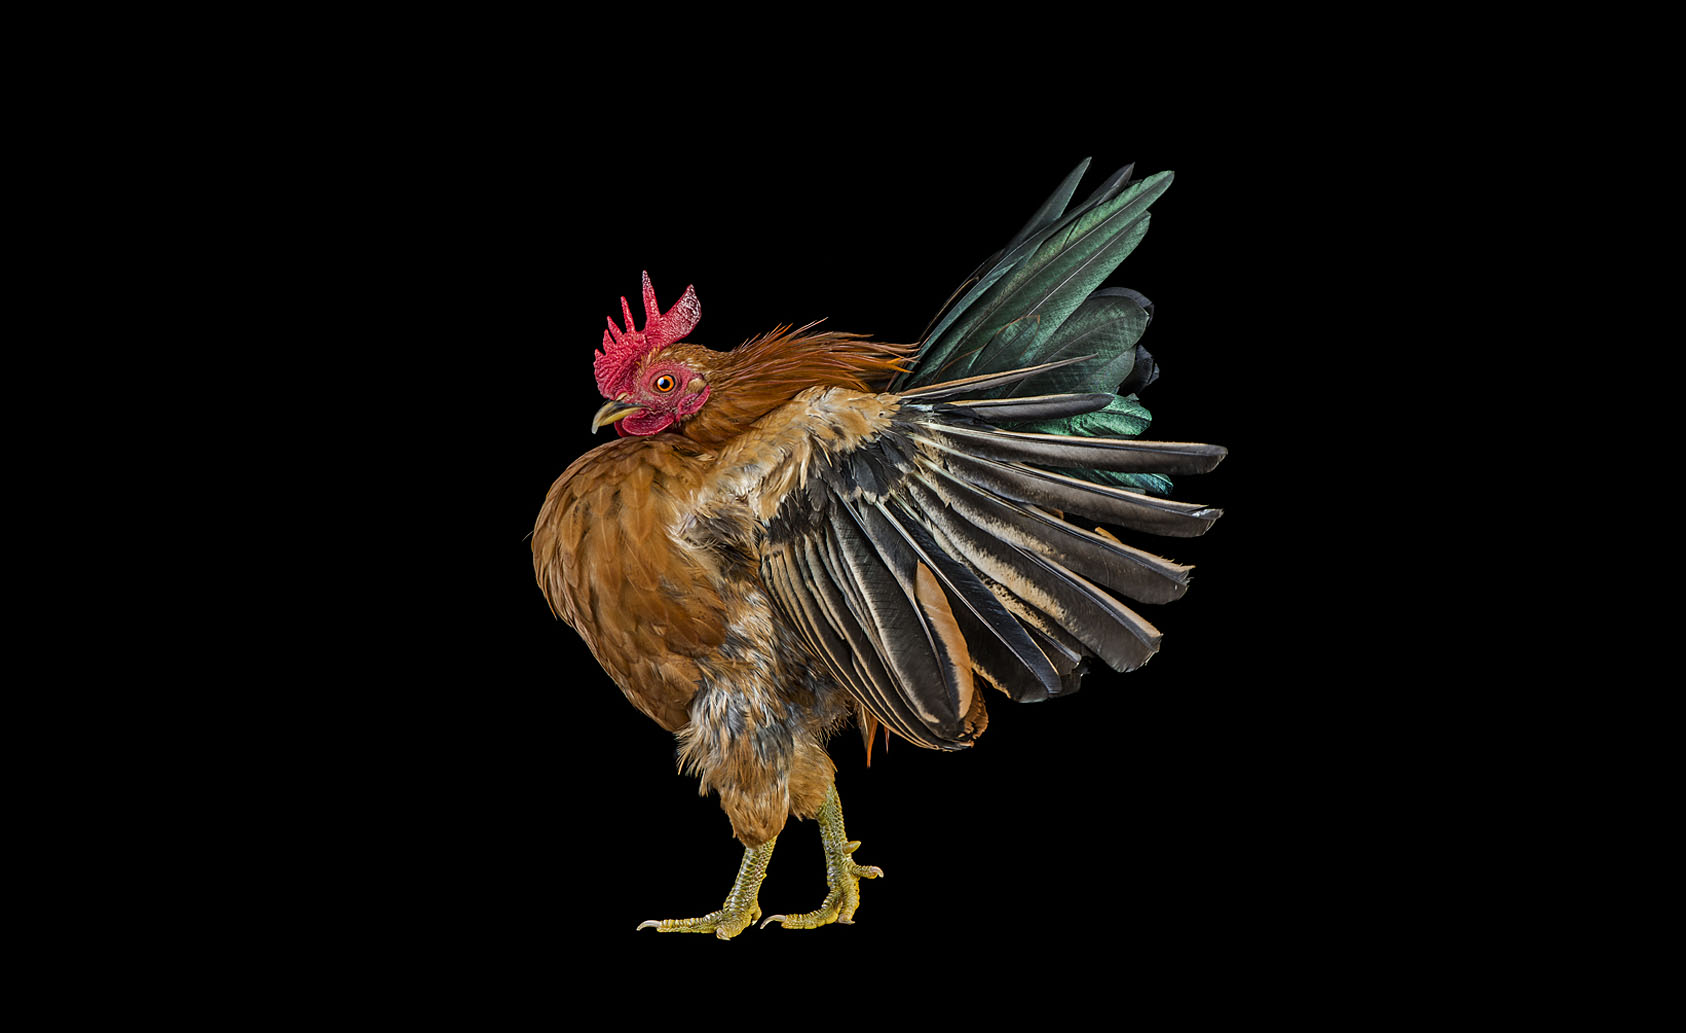 'Cocks' - Ernest Goh